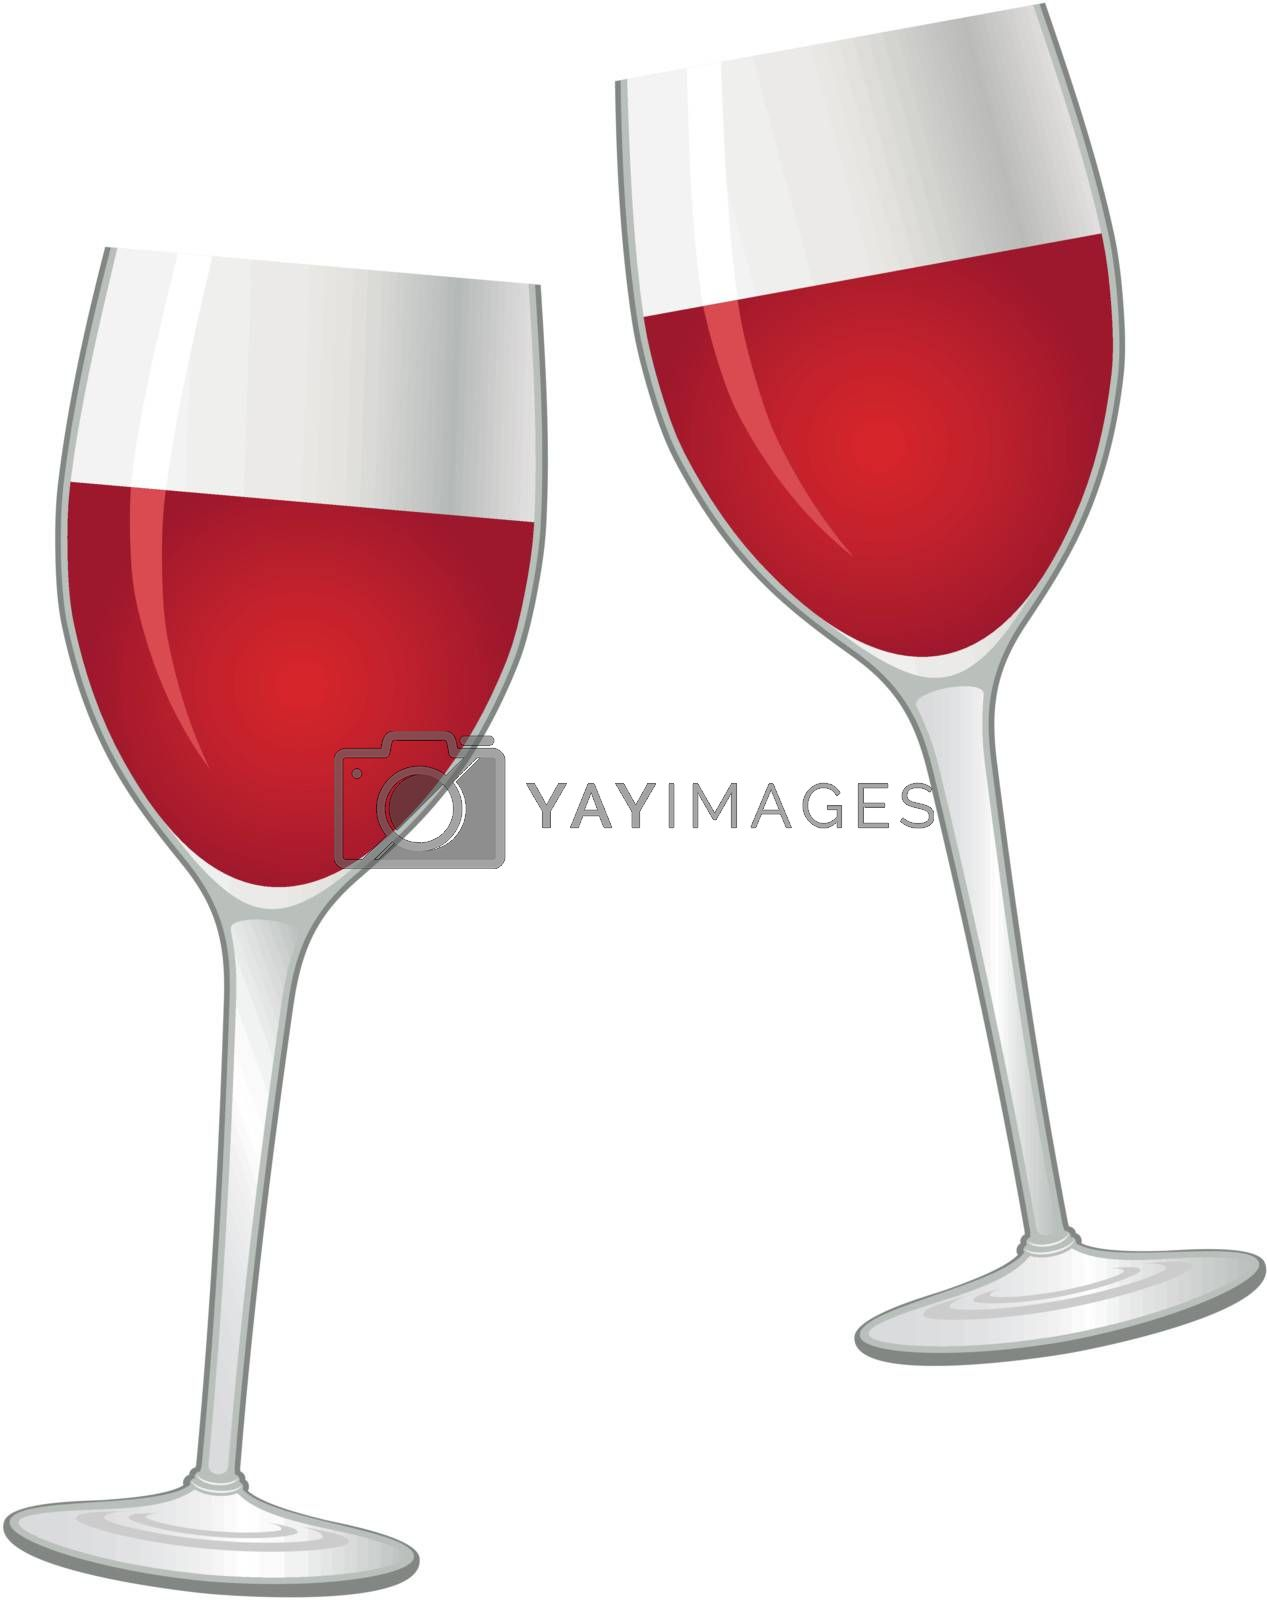 Image of two glasses of red wine.